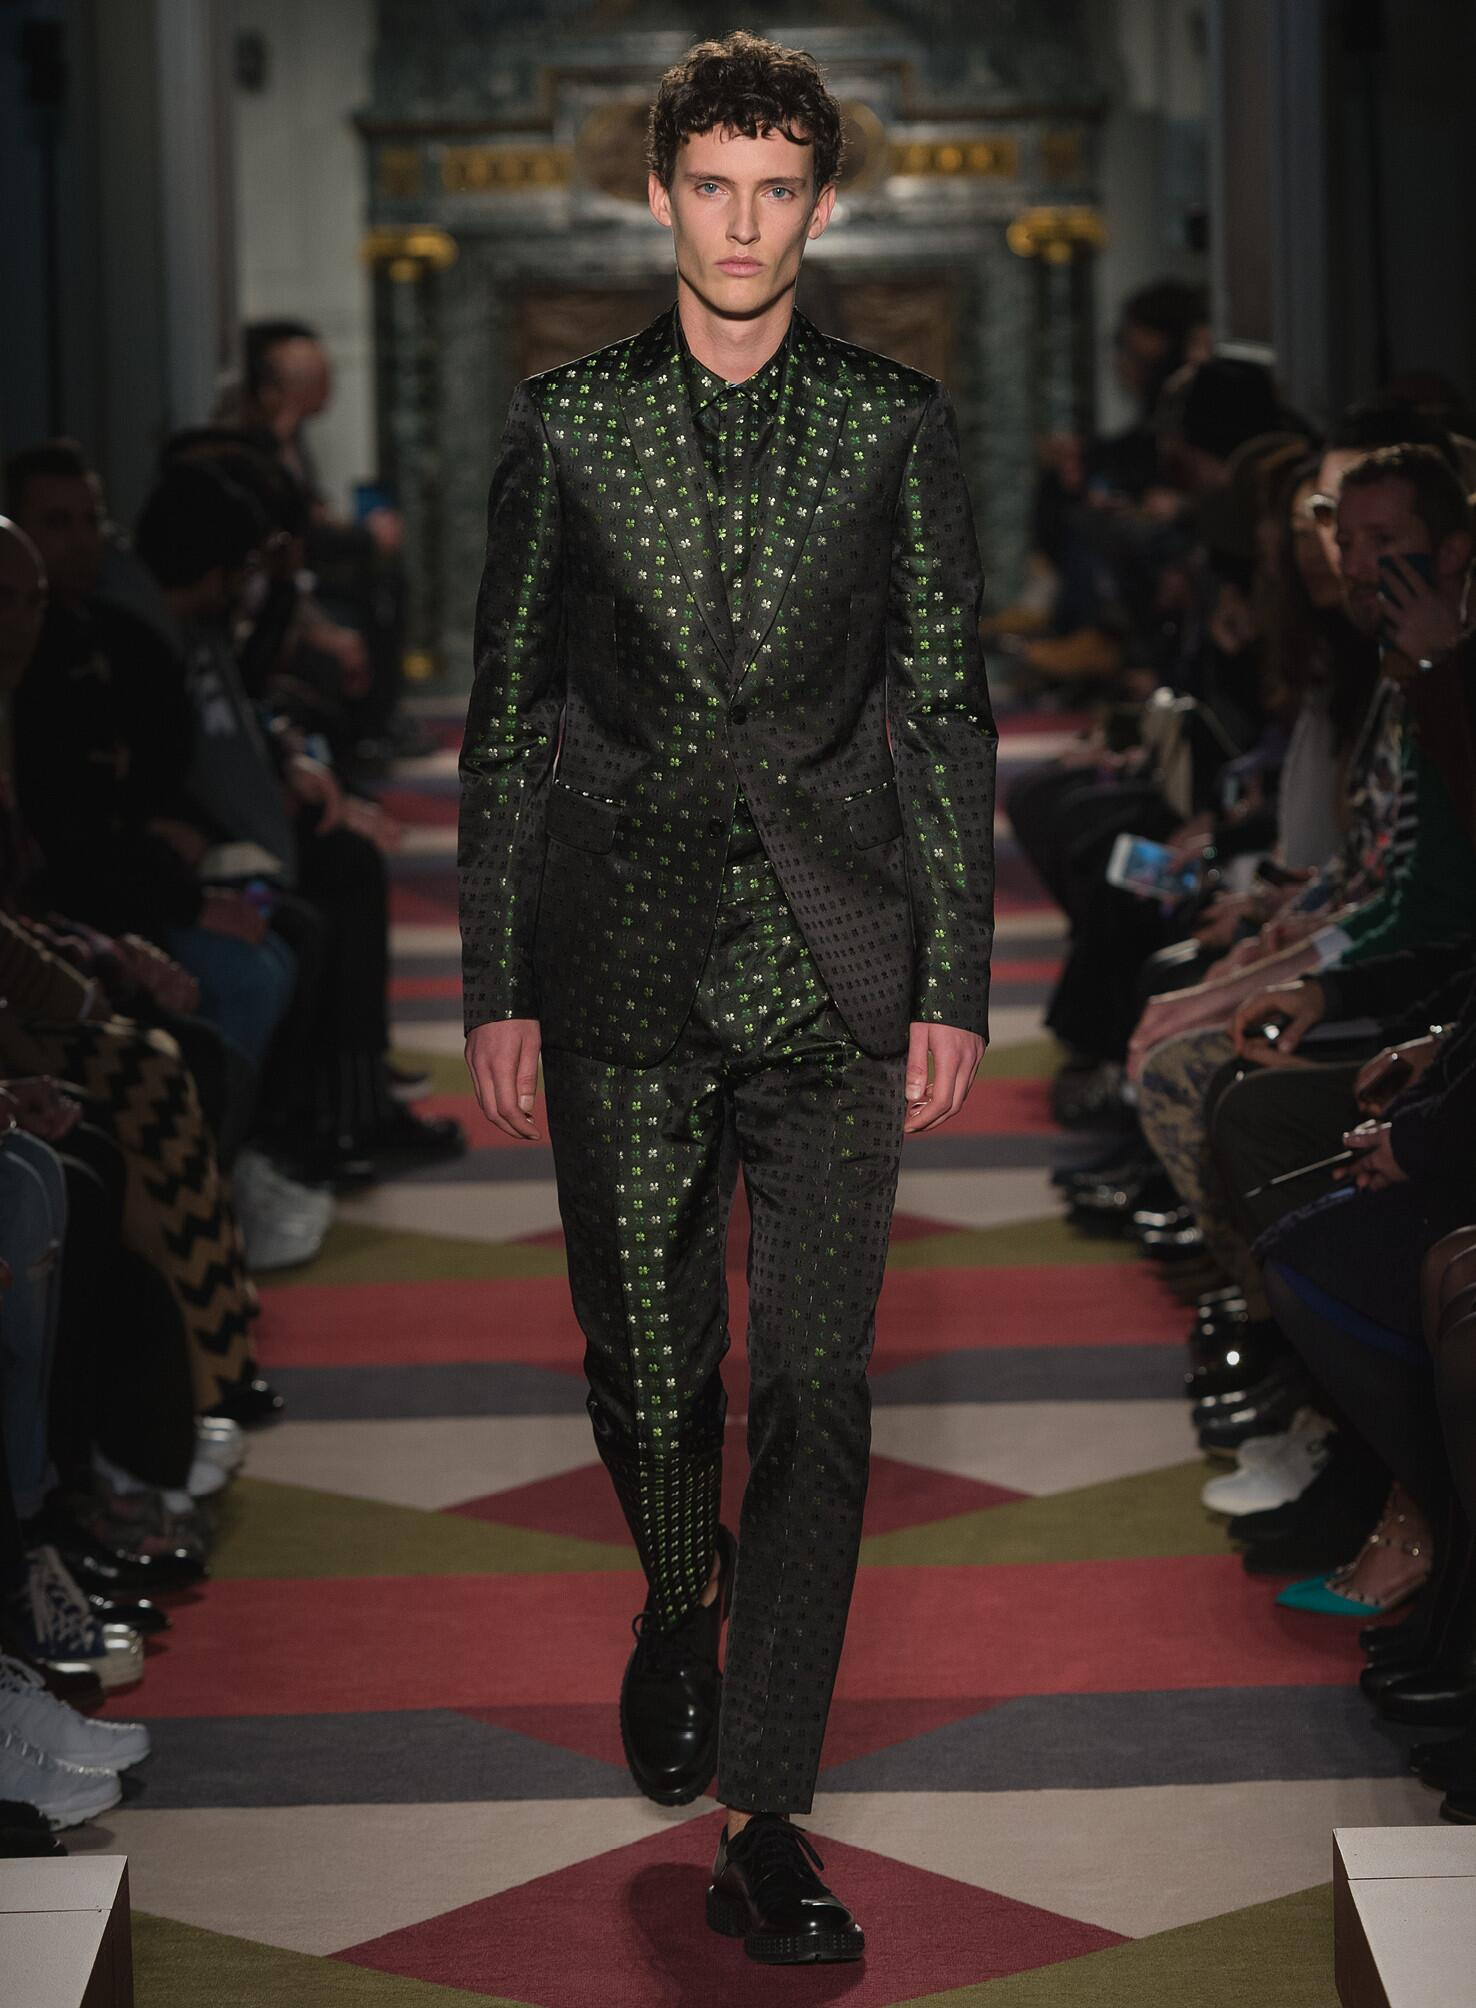 2015 16 Catwalk Valentino Fall Winter Men's Collection Paris Fashion Week